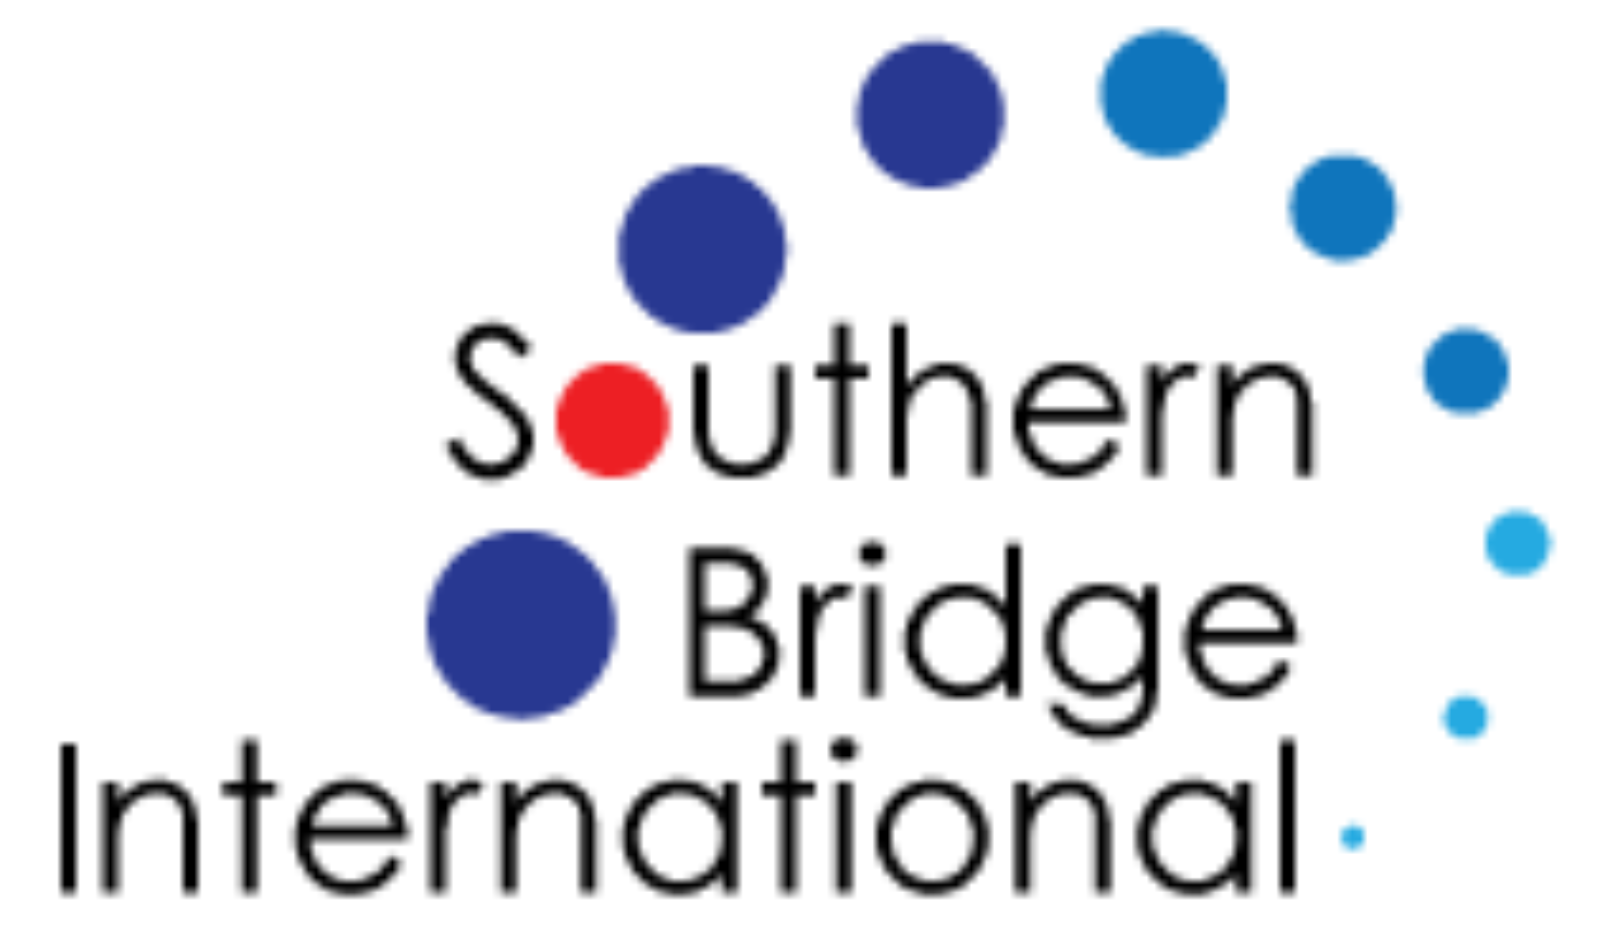 Southern Bridge International